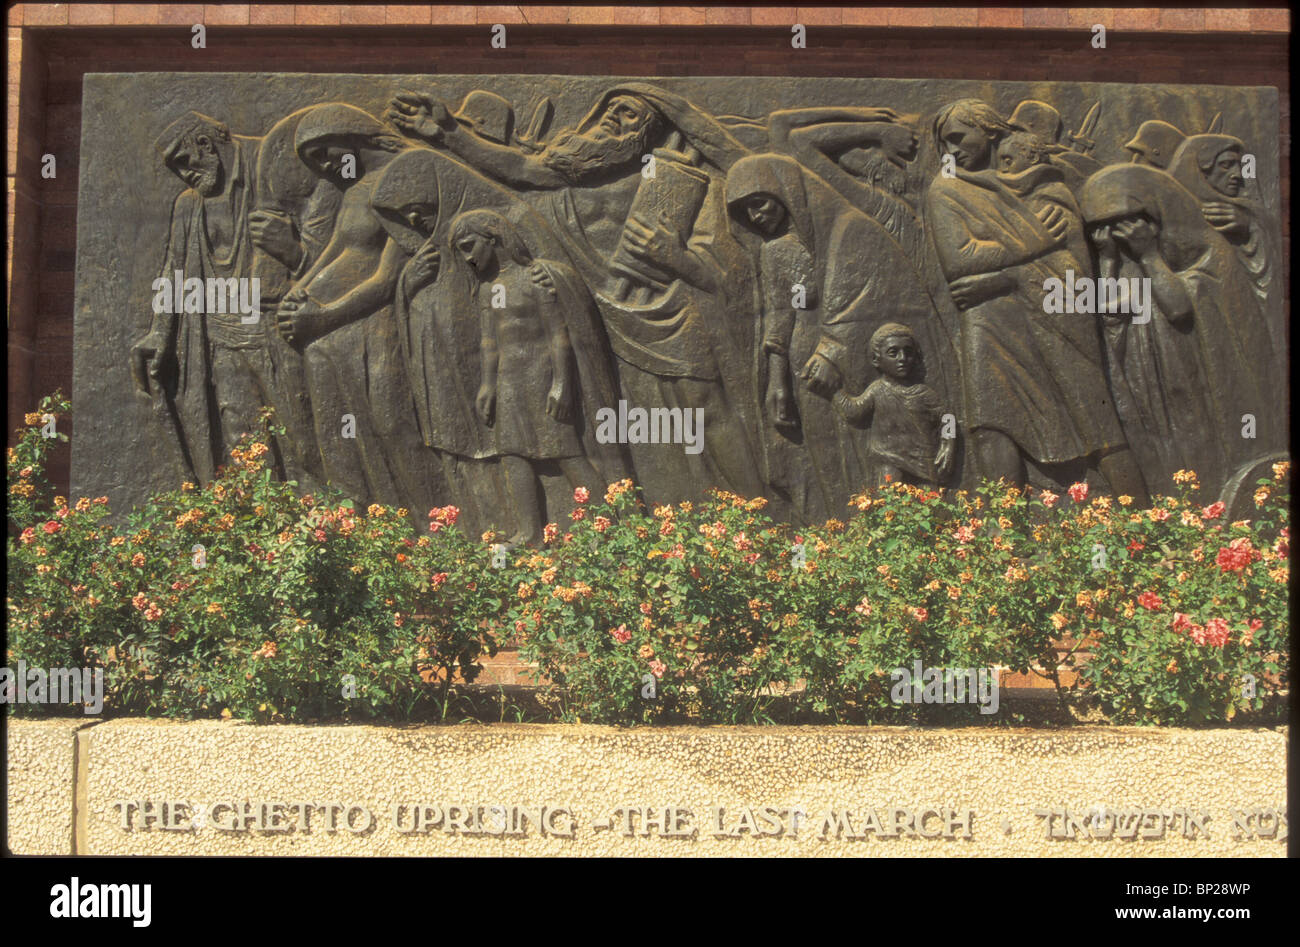 2380. YAD VASHEM - MONUMENT IN THE HONOR OF THE WARSHAW GHETTO UPRISING - Stock Image